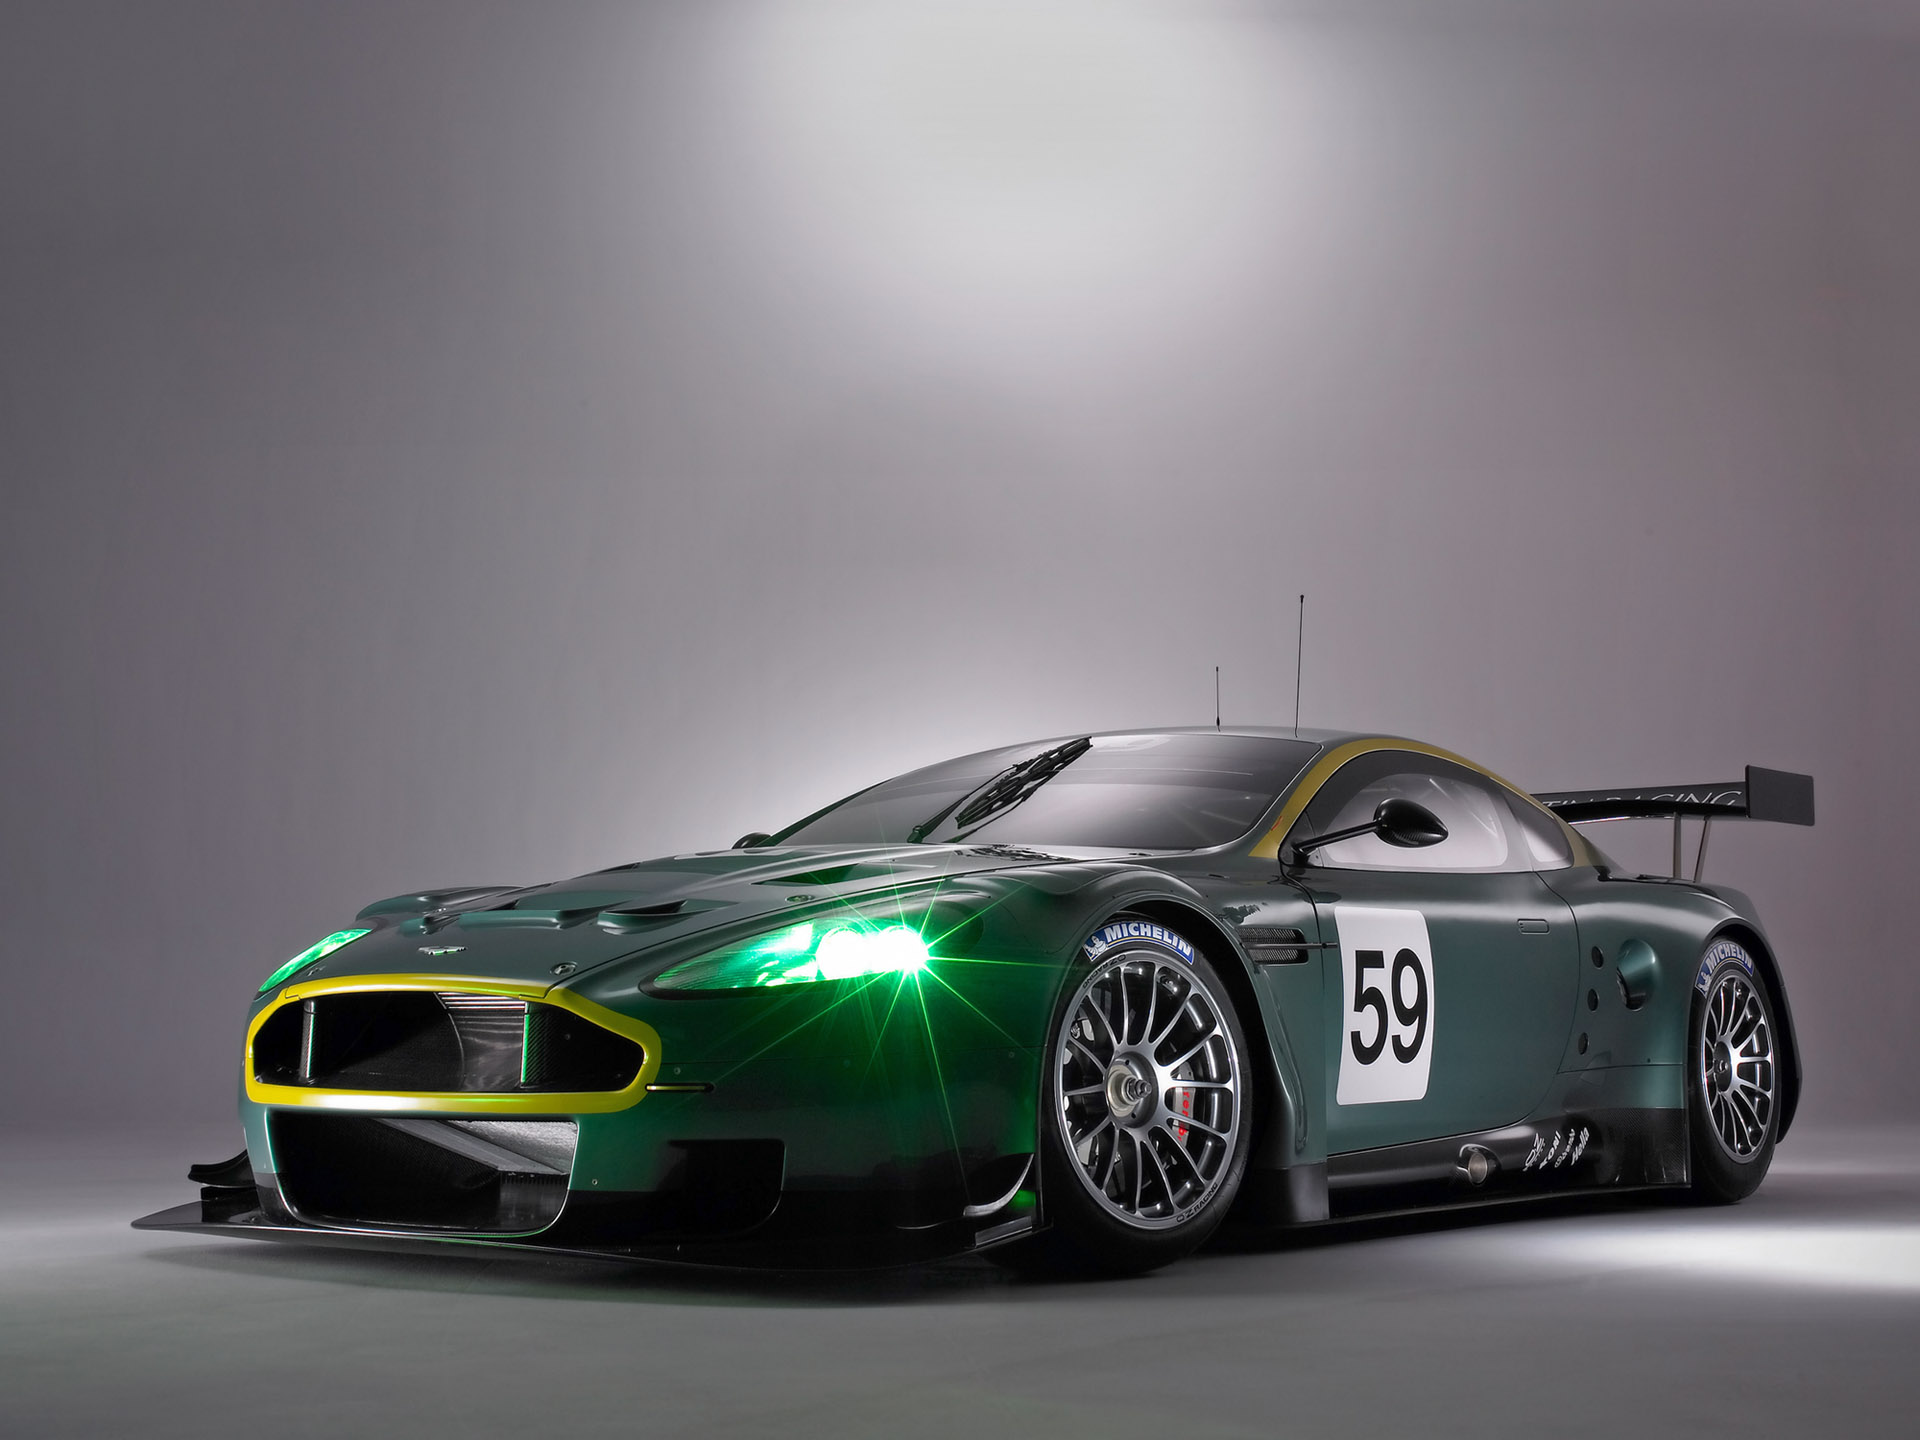 Aston martin dbr9 photo - 3